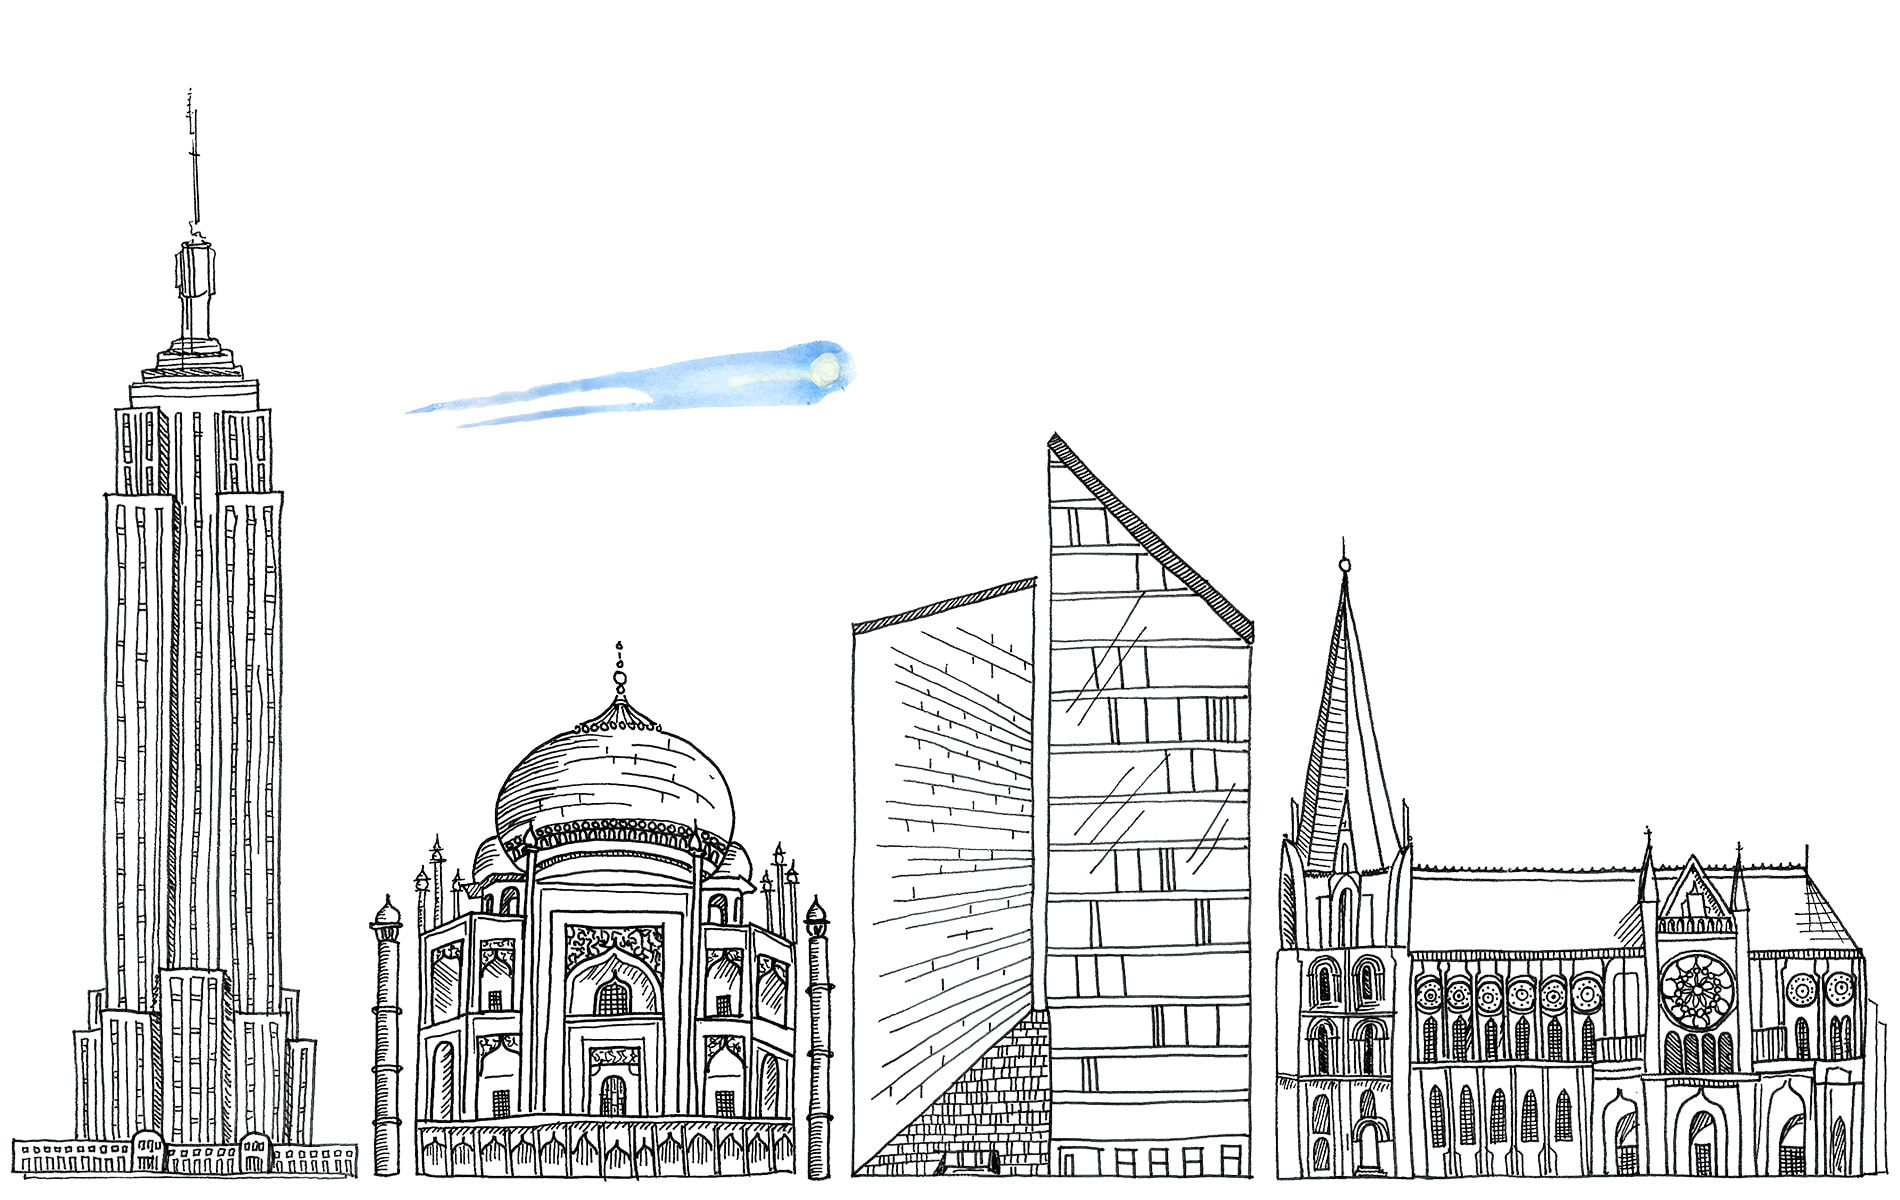 Illustrations of Cathedral de Chartrés, Empire State Building, Penzoil Place, and Taj Mahal